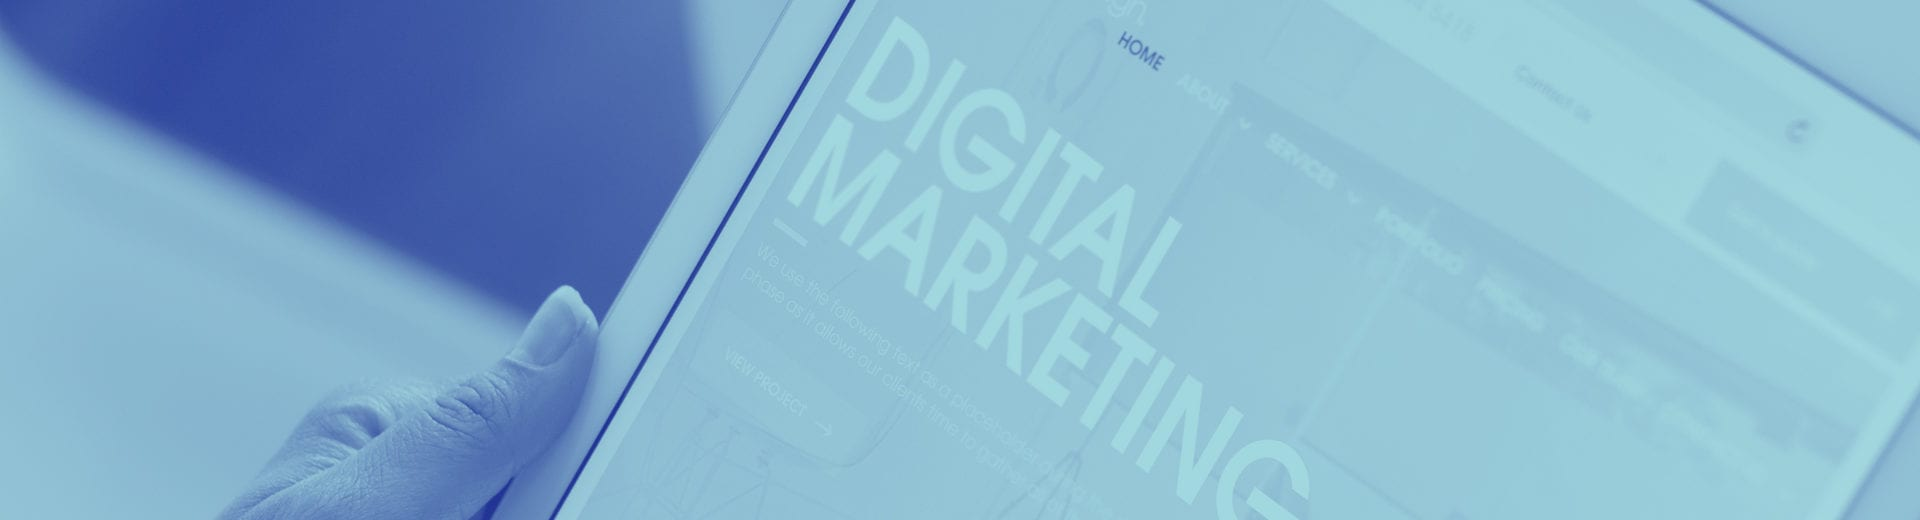 Digital Marketing IPad